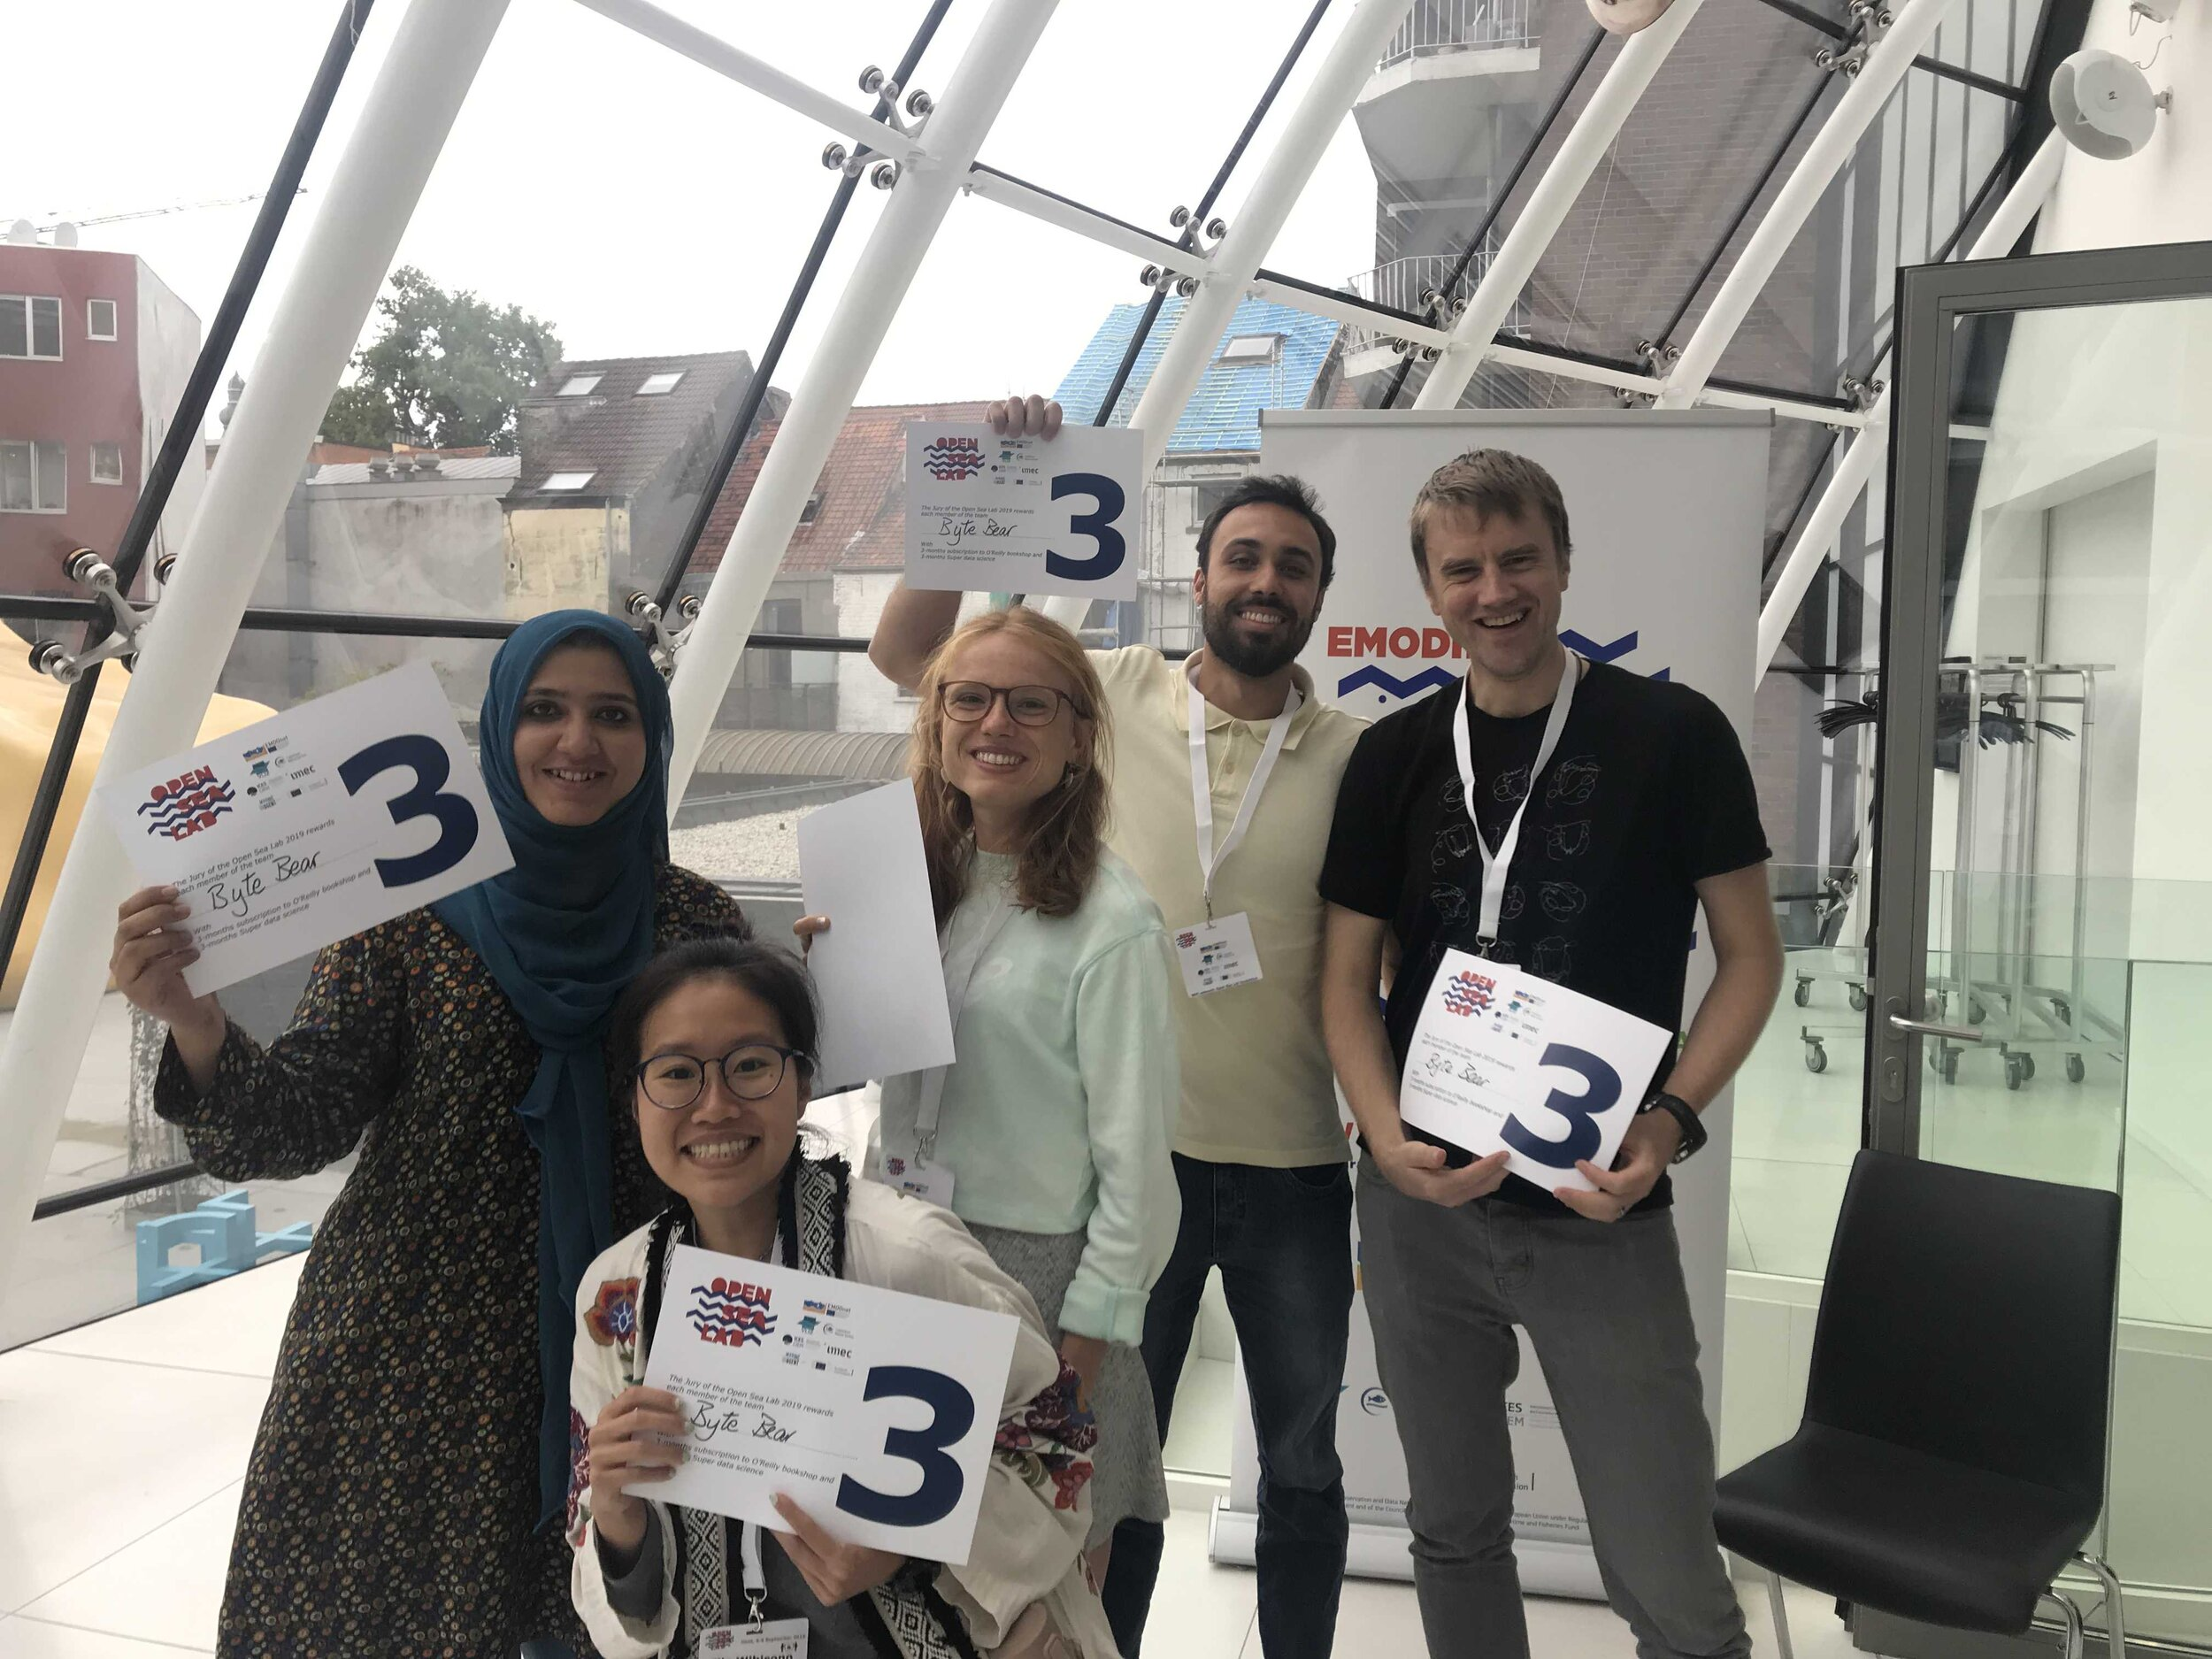 Elle and her Hackathon team #ByteBear placed 3rd overall among more than a dozen teams in this year's Hackathon data science competition run by Open Sea Lab.